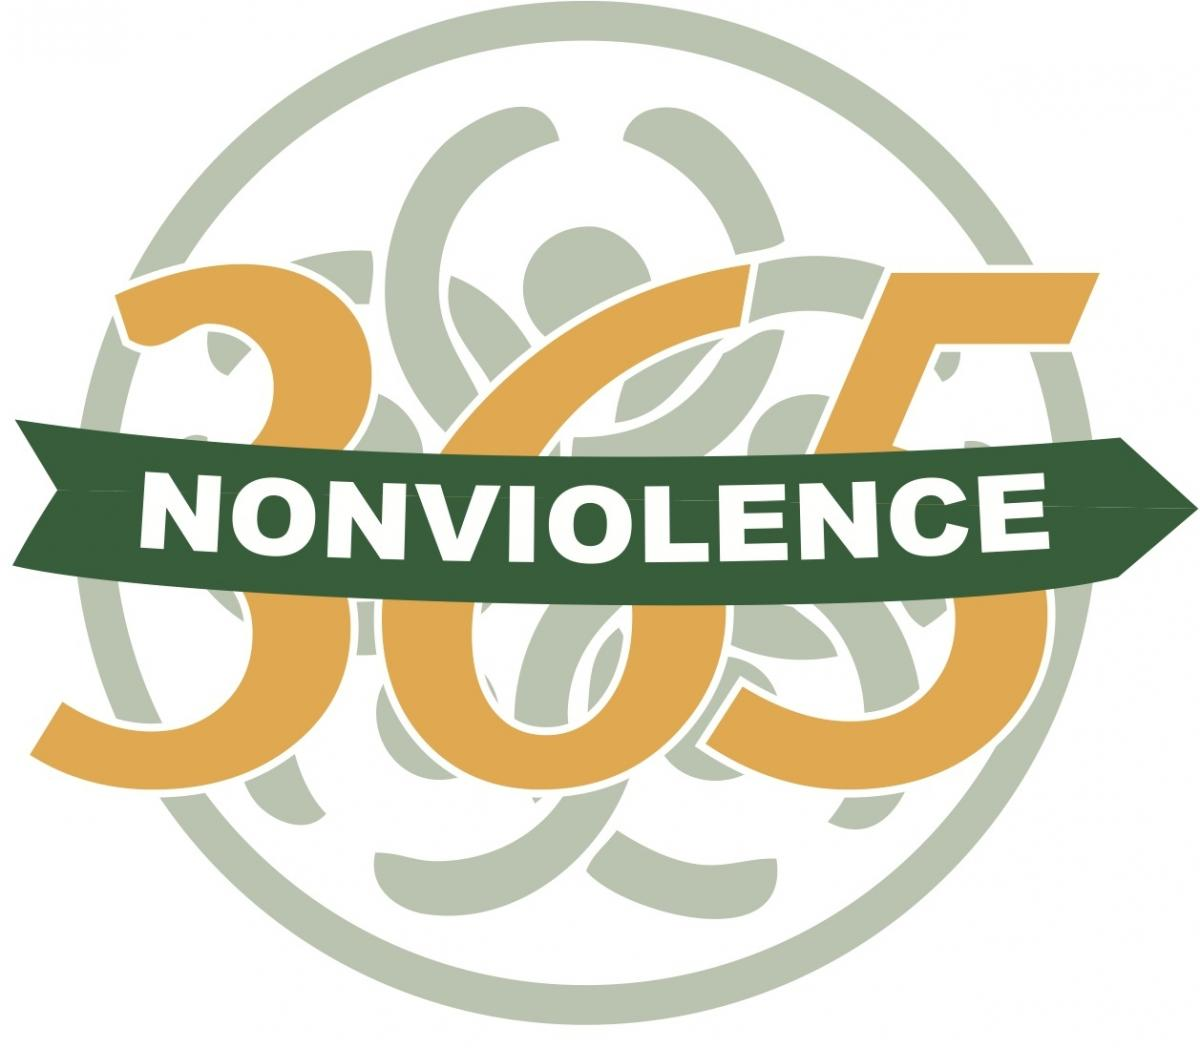 100 Days of Nonviolence